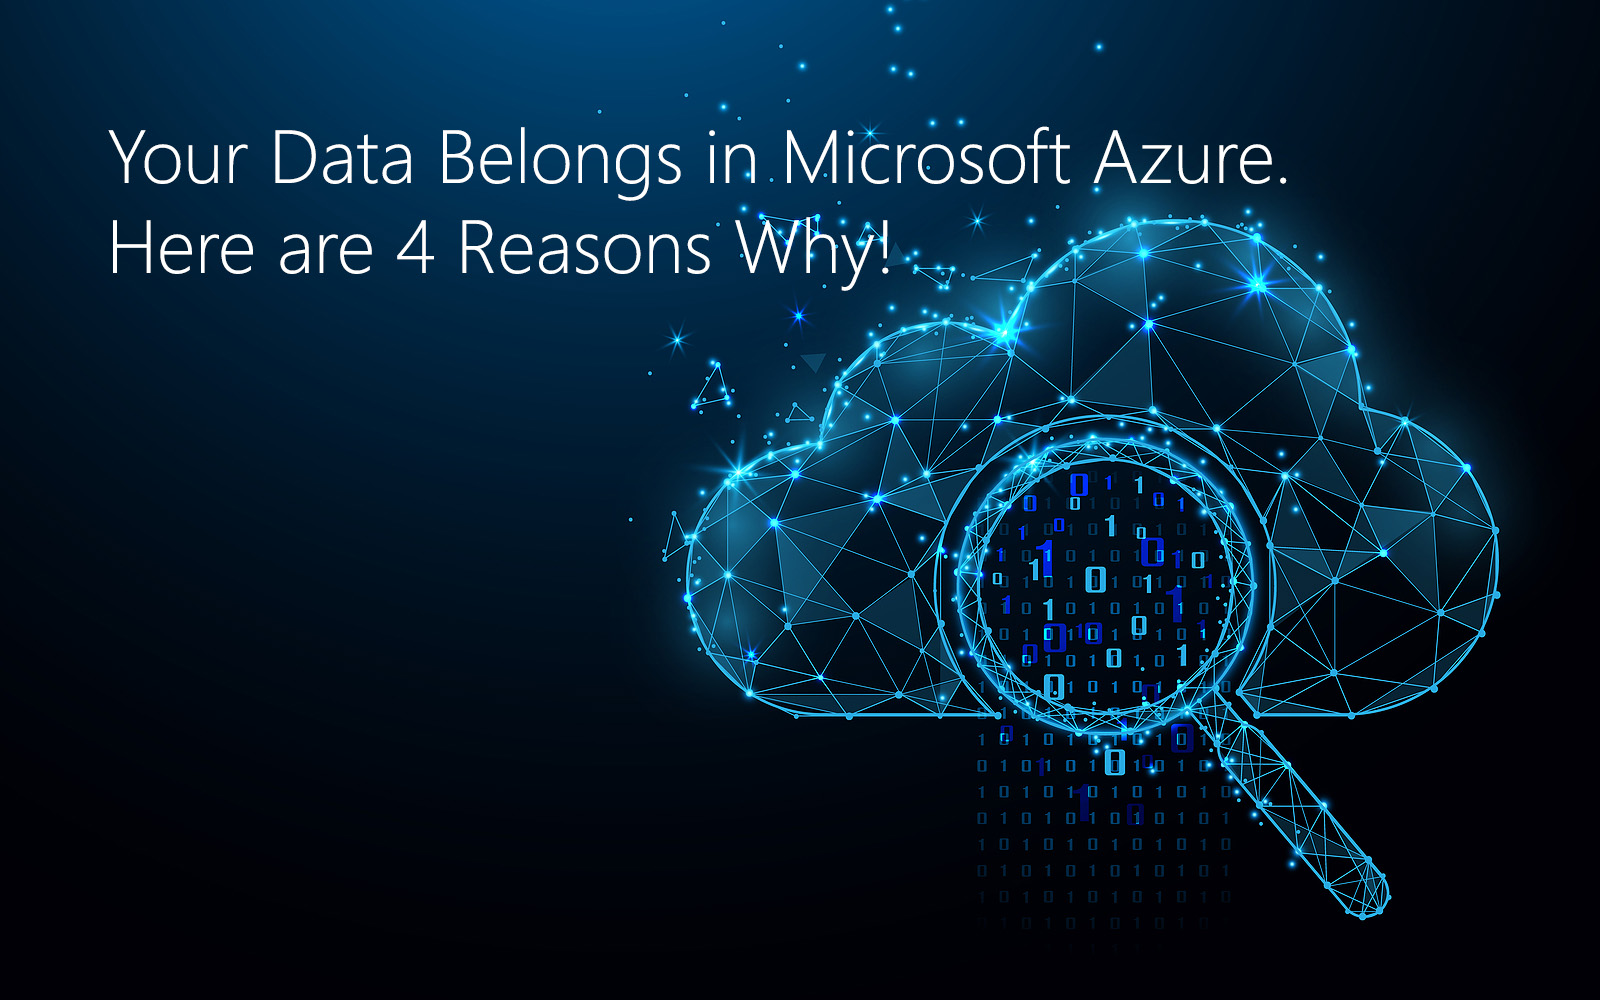 Your Data Belongs in Microsoft Azure. Here are 4 Reasons Why!